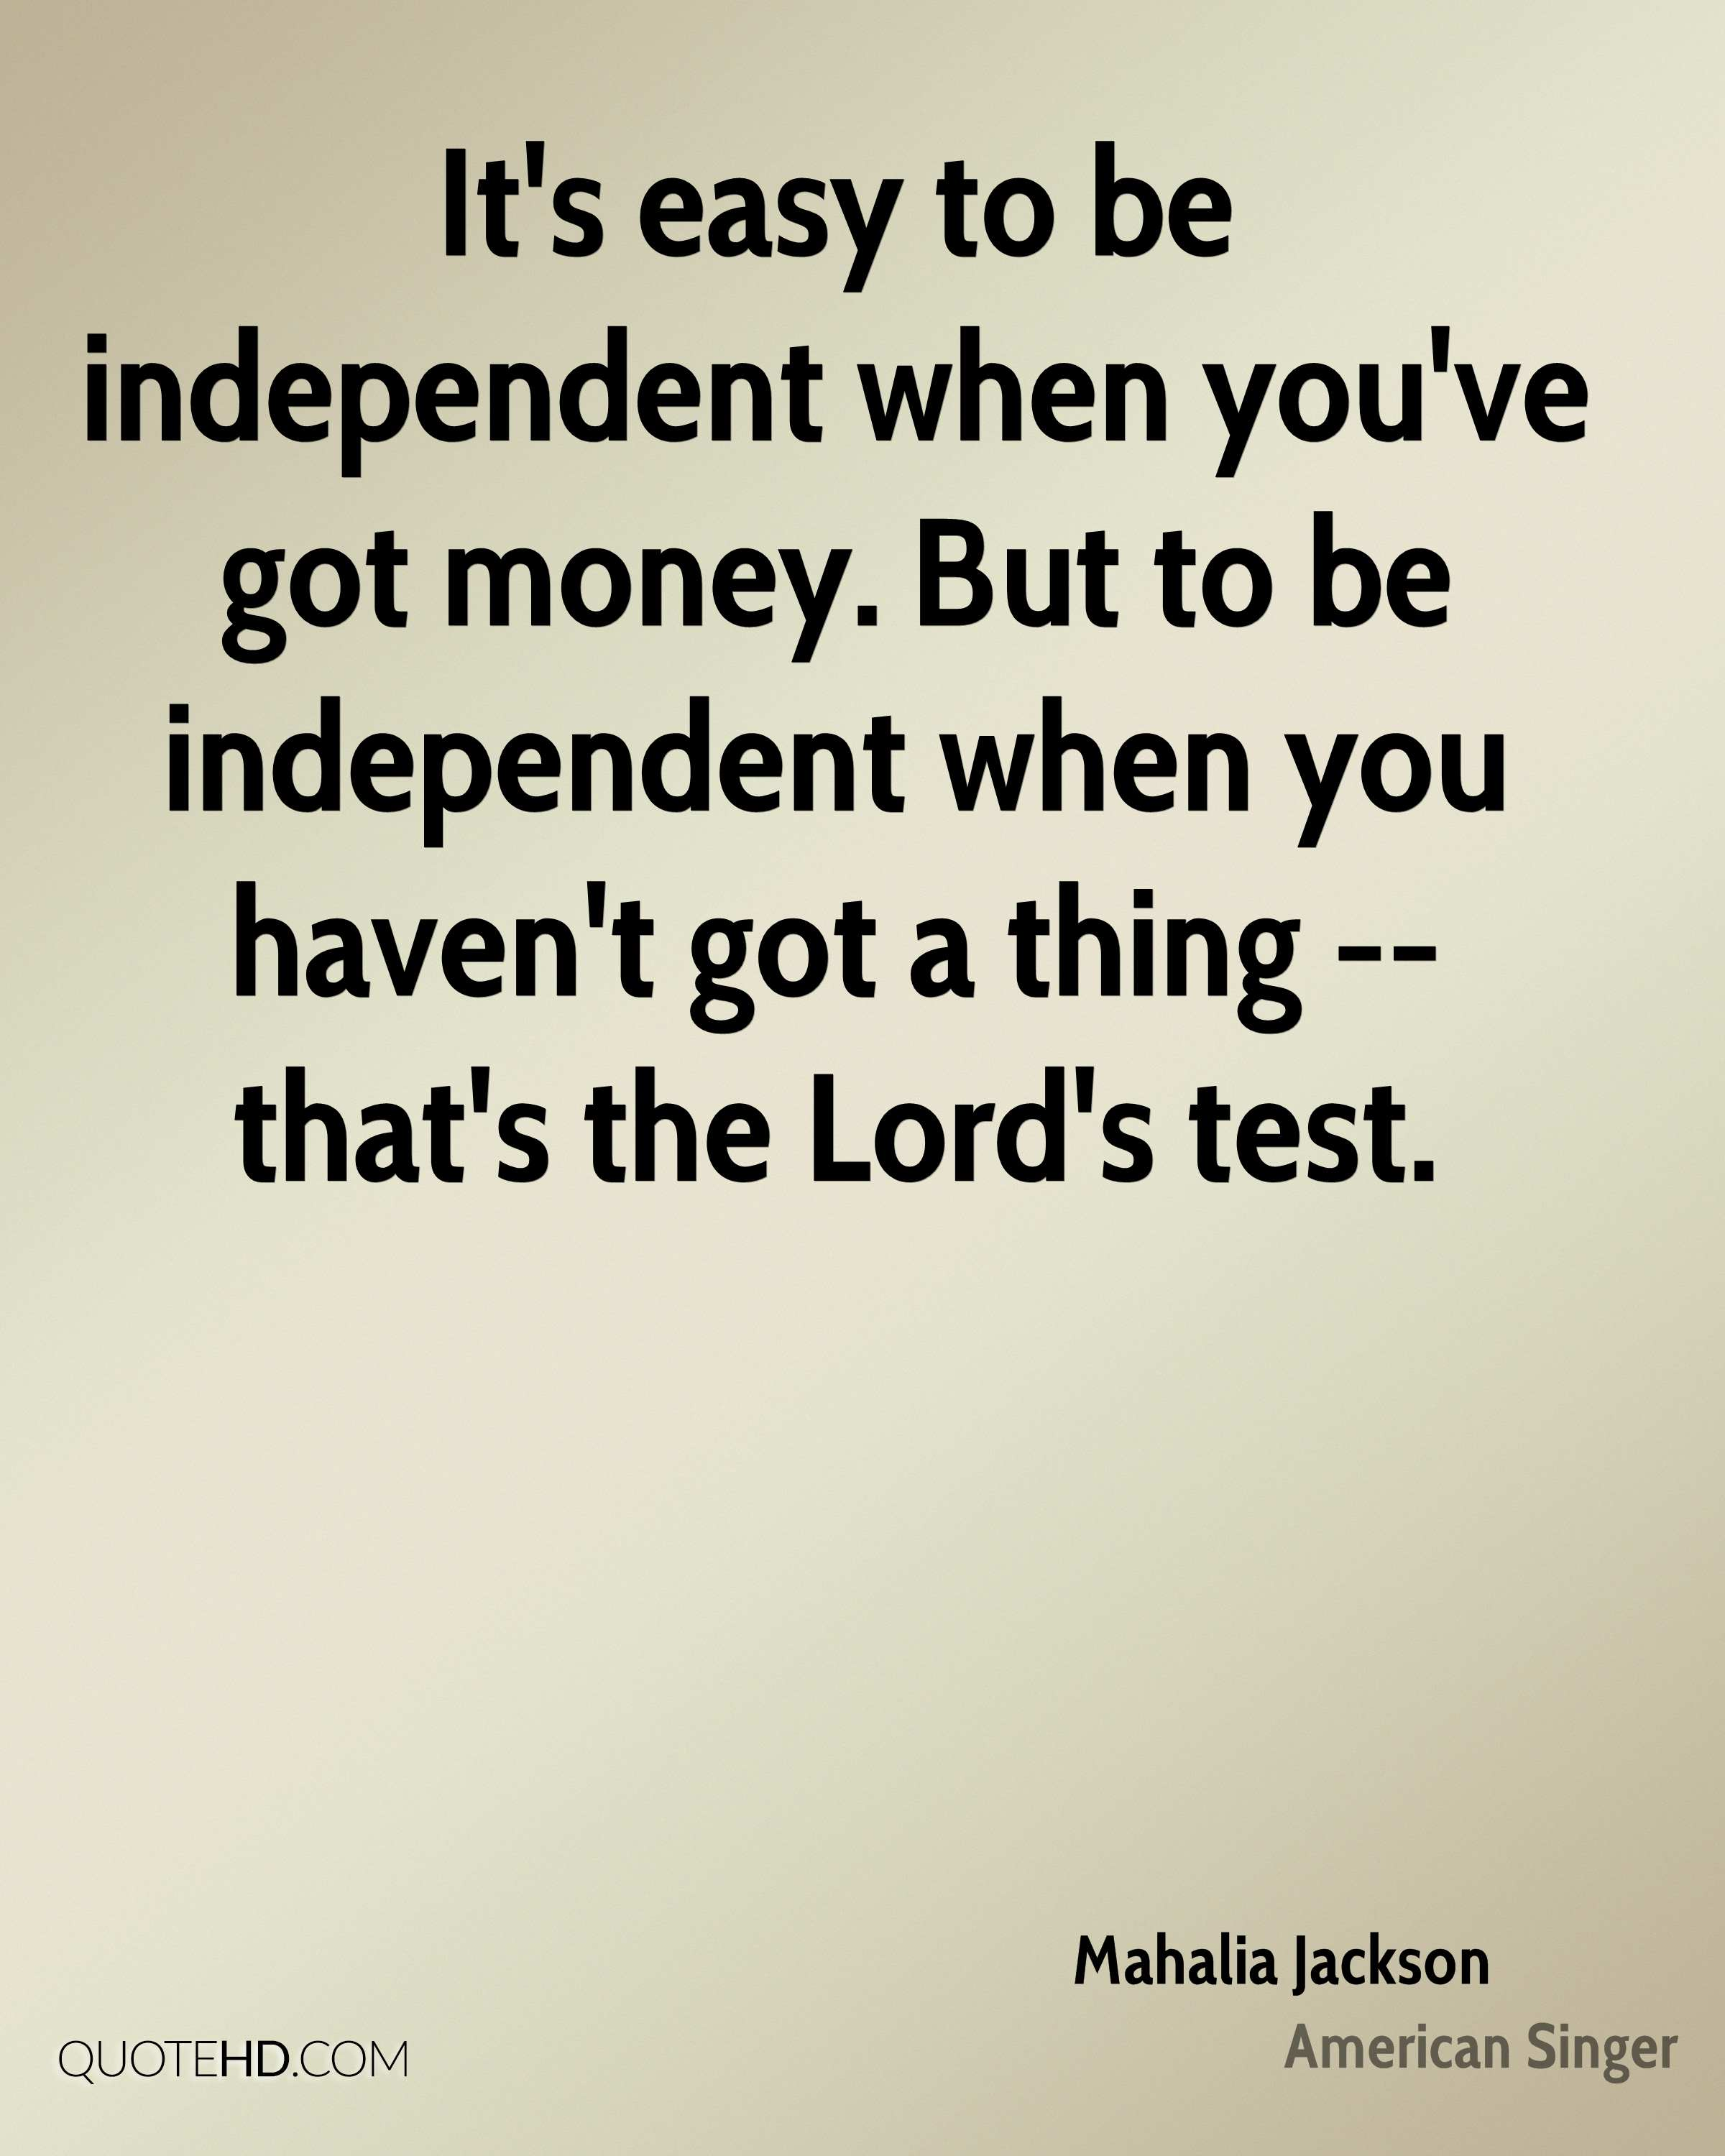 It's easy to be independent when you've got money. But to be independent when you haven't got a thing -- that's the Lord's test.